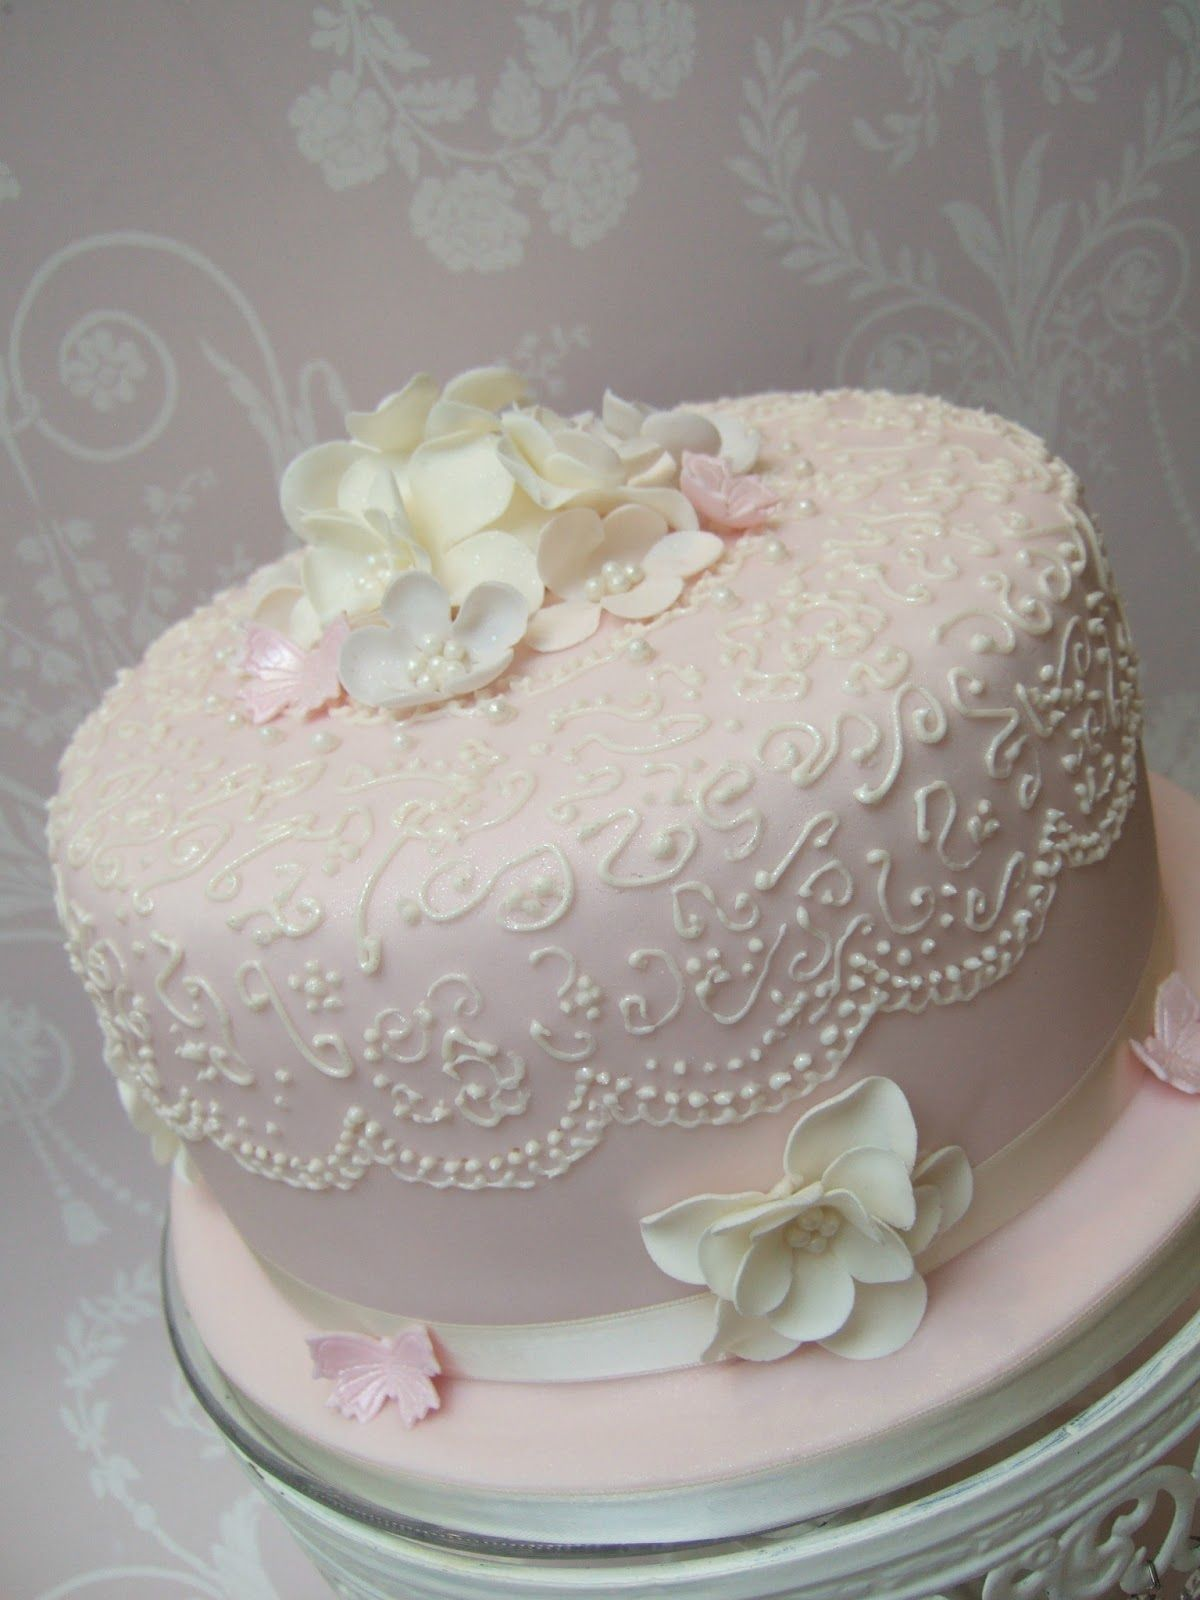 Living a Simple and Blessed Life Birthday cake for women